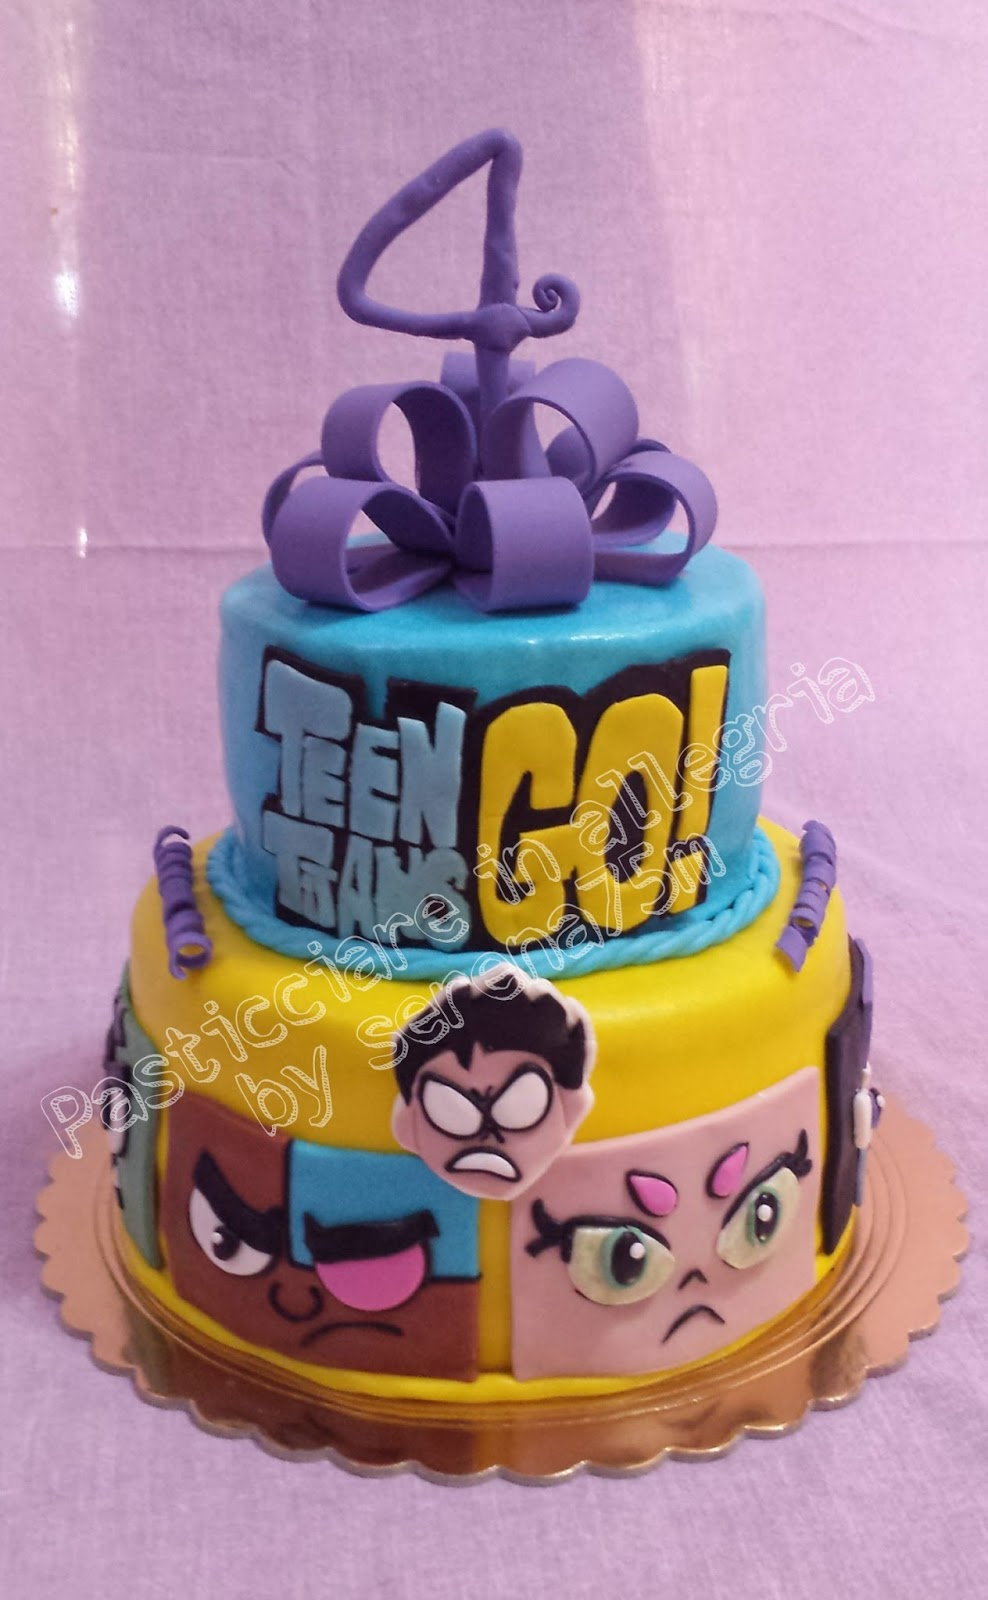 Preferenza Pasticciare in allegria: Torta Teen Titans GO! UM34